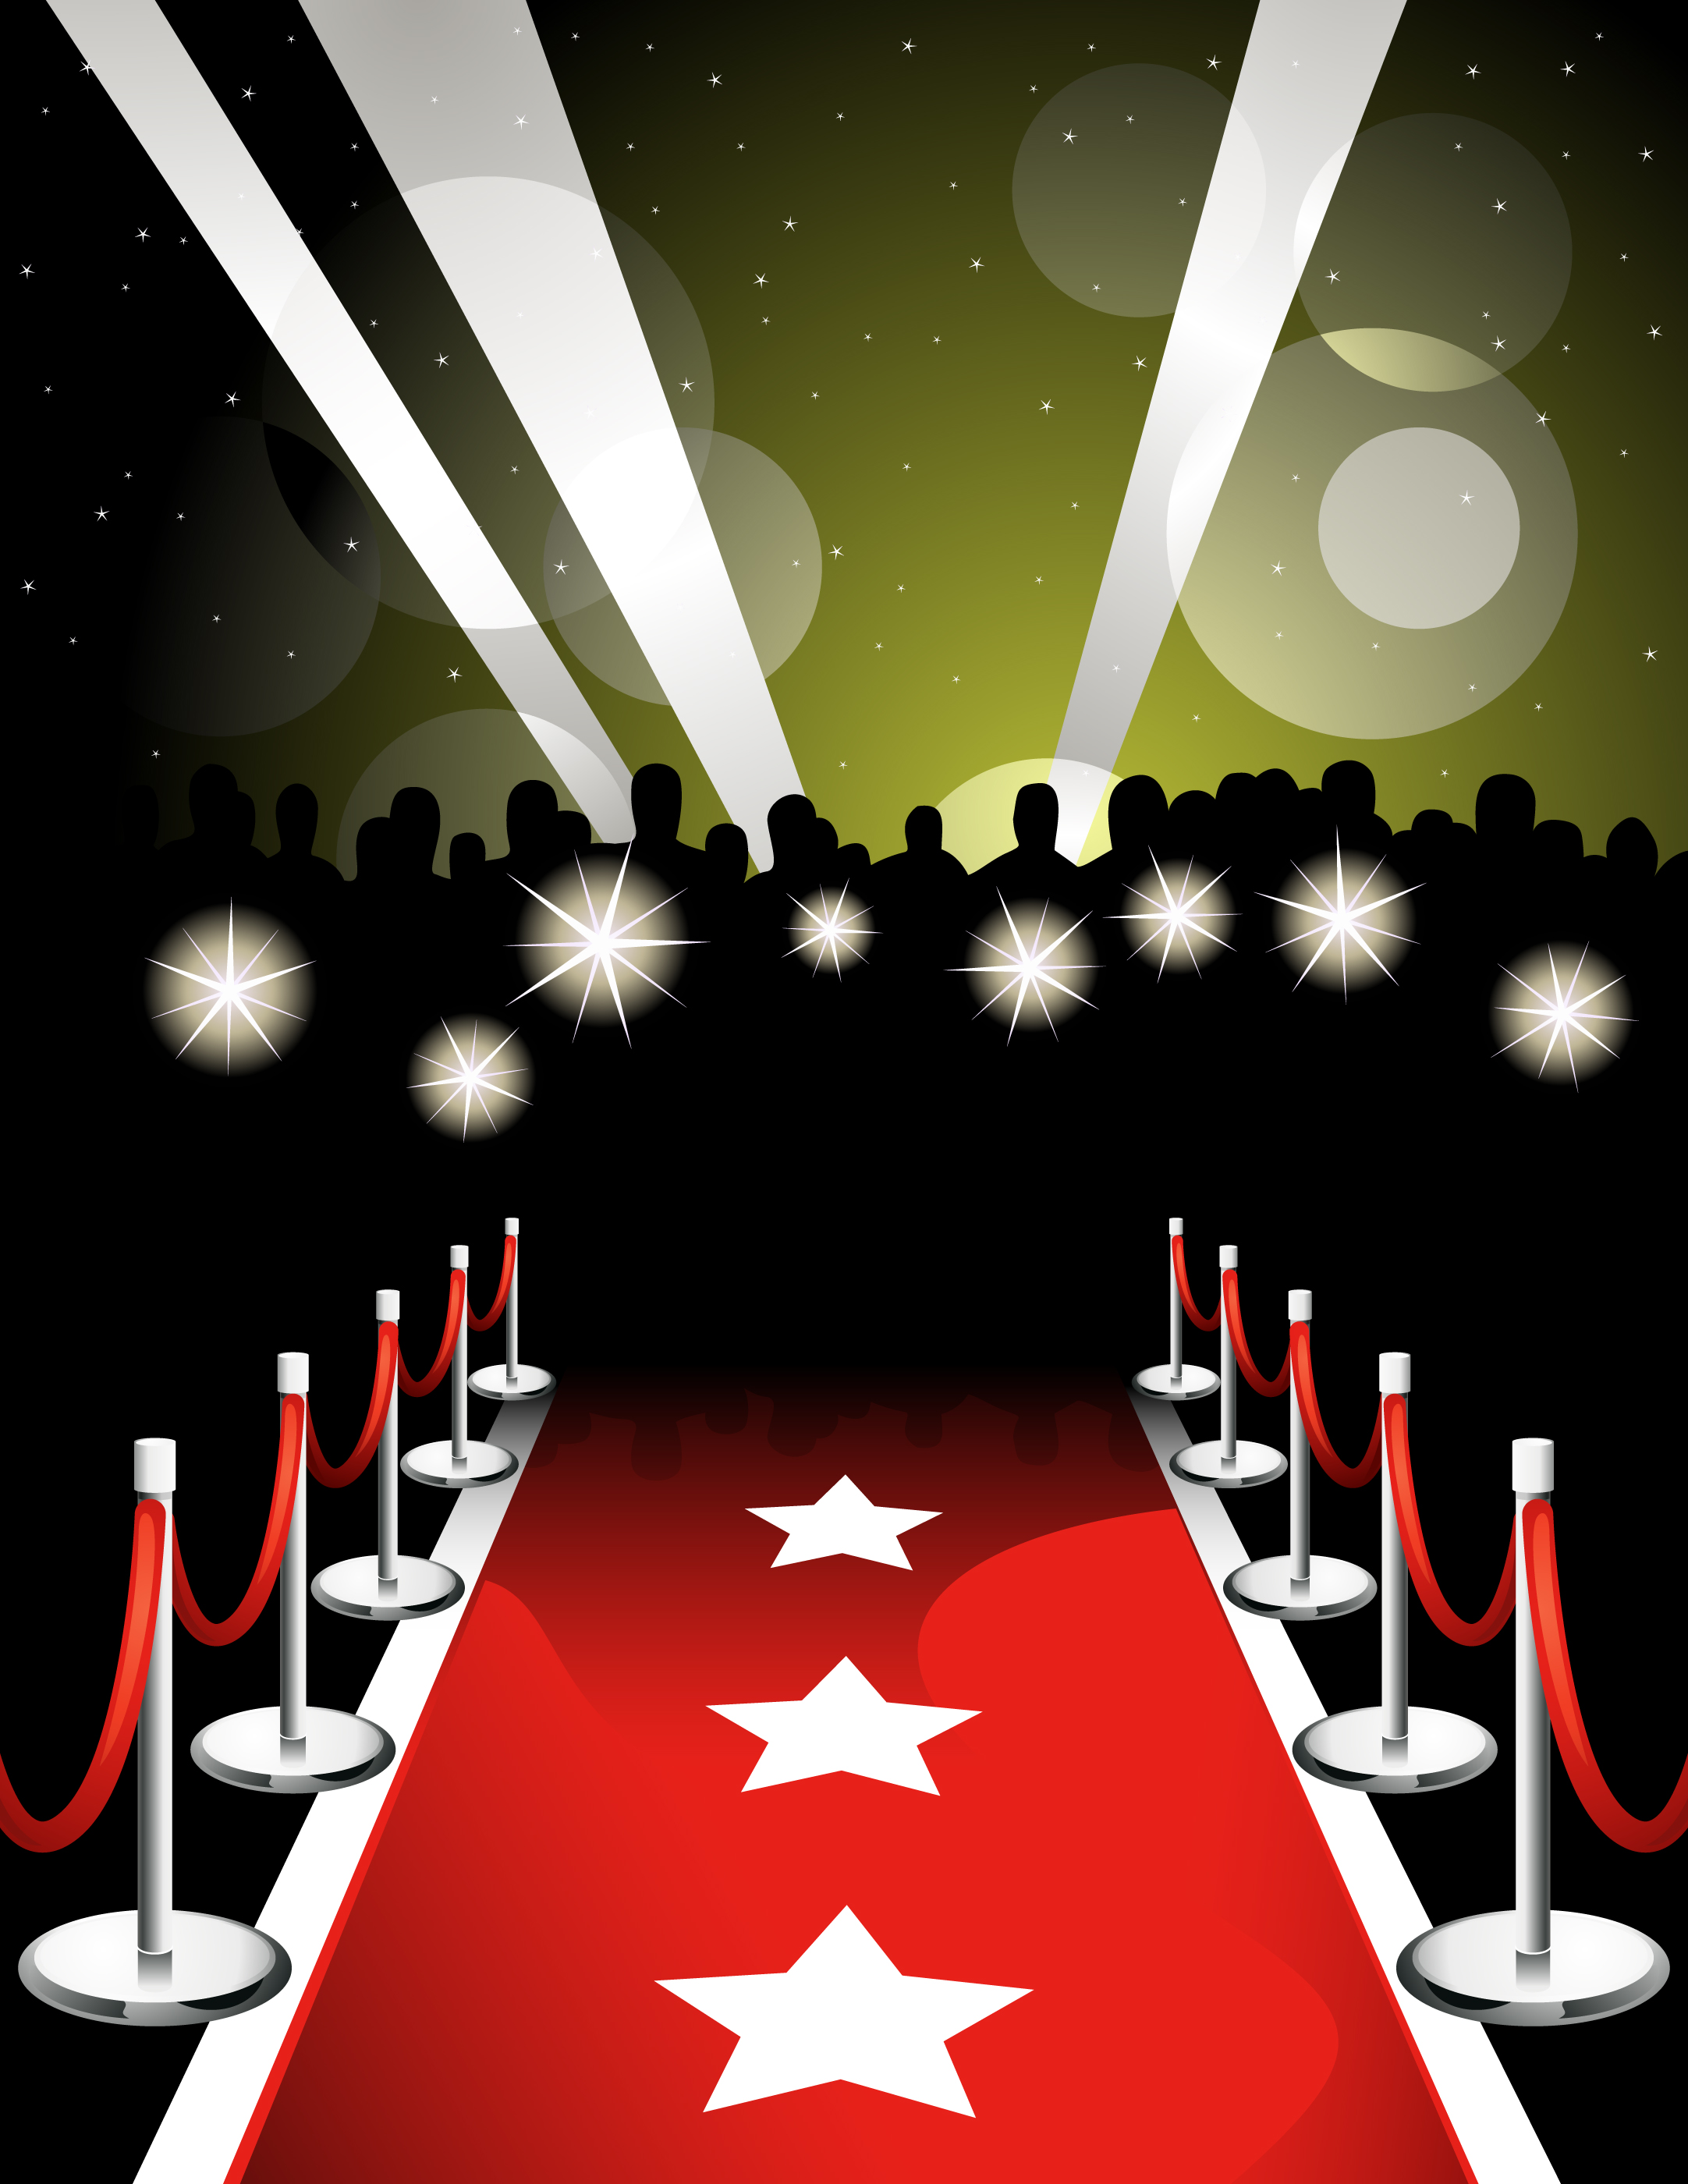 Events Wiley Red Carpets Google Search Business Events Star